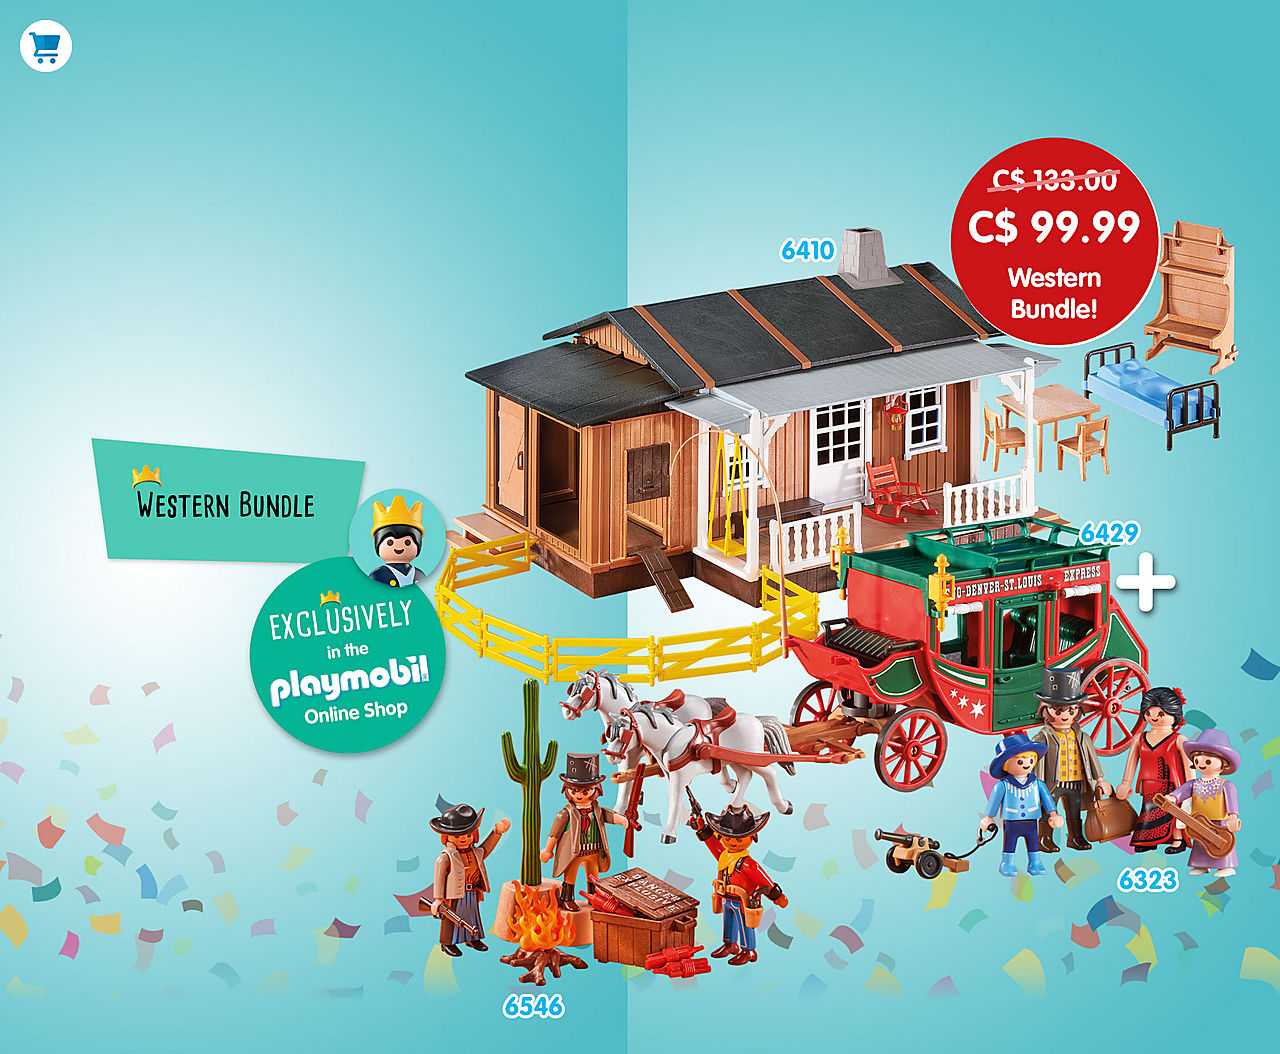 SHOP_PROMO_BUNDLE_WESTERN_10_2019_CA_EN_2X2